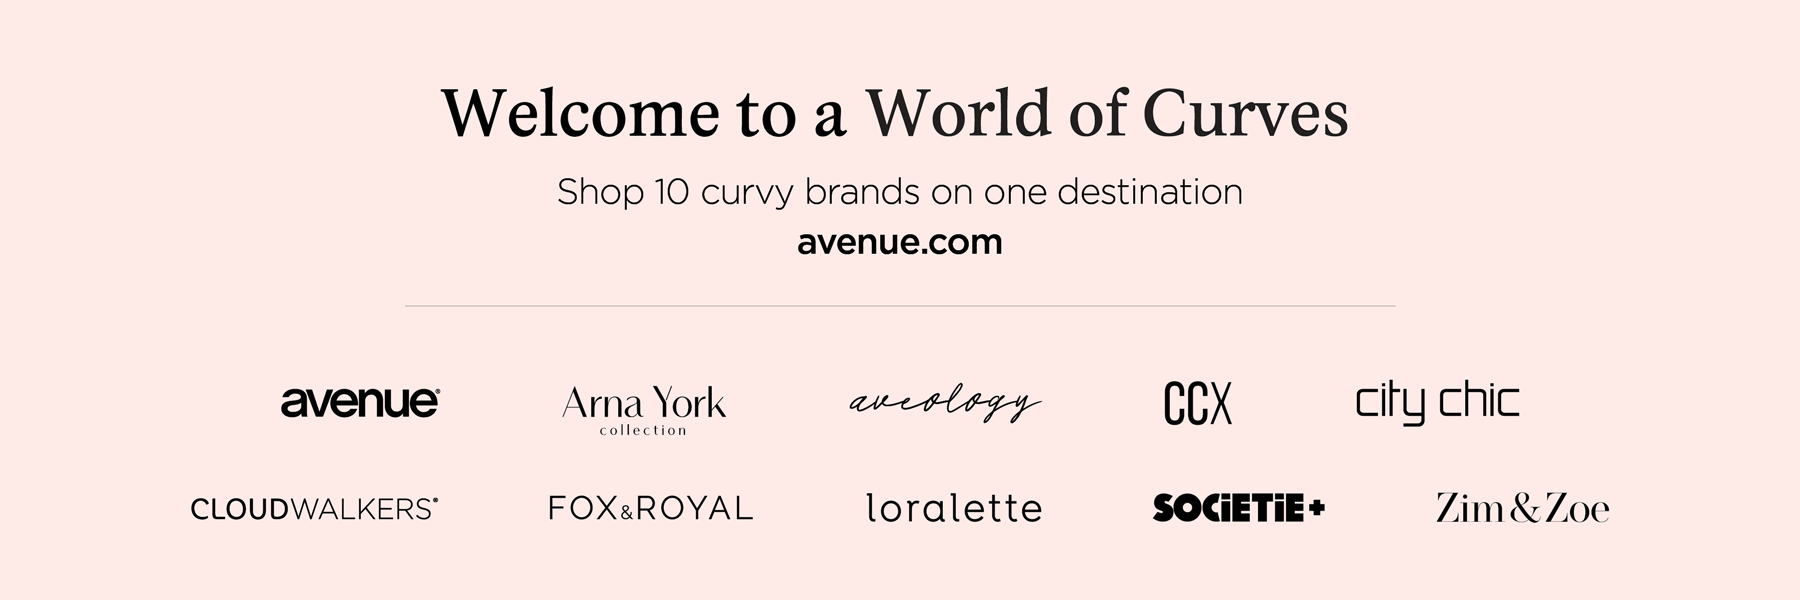 WELCOME TO A WORLD OF CURVES - Shop 10 curvy brands in one destination avenue.com